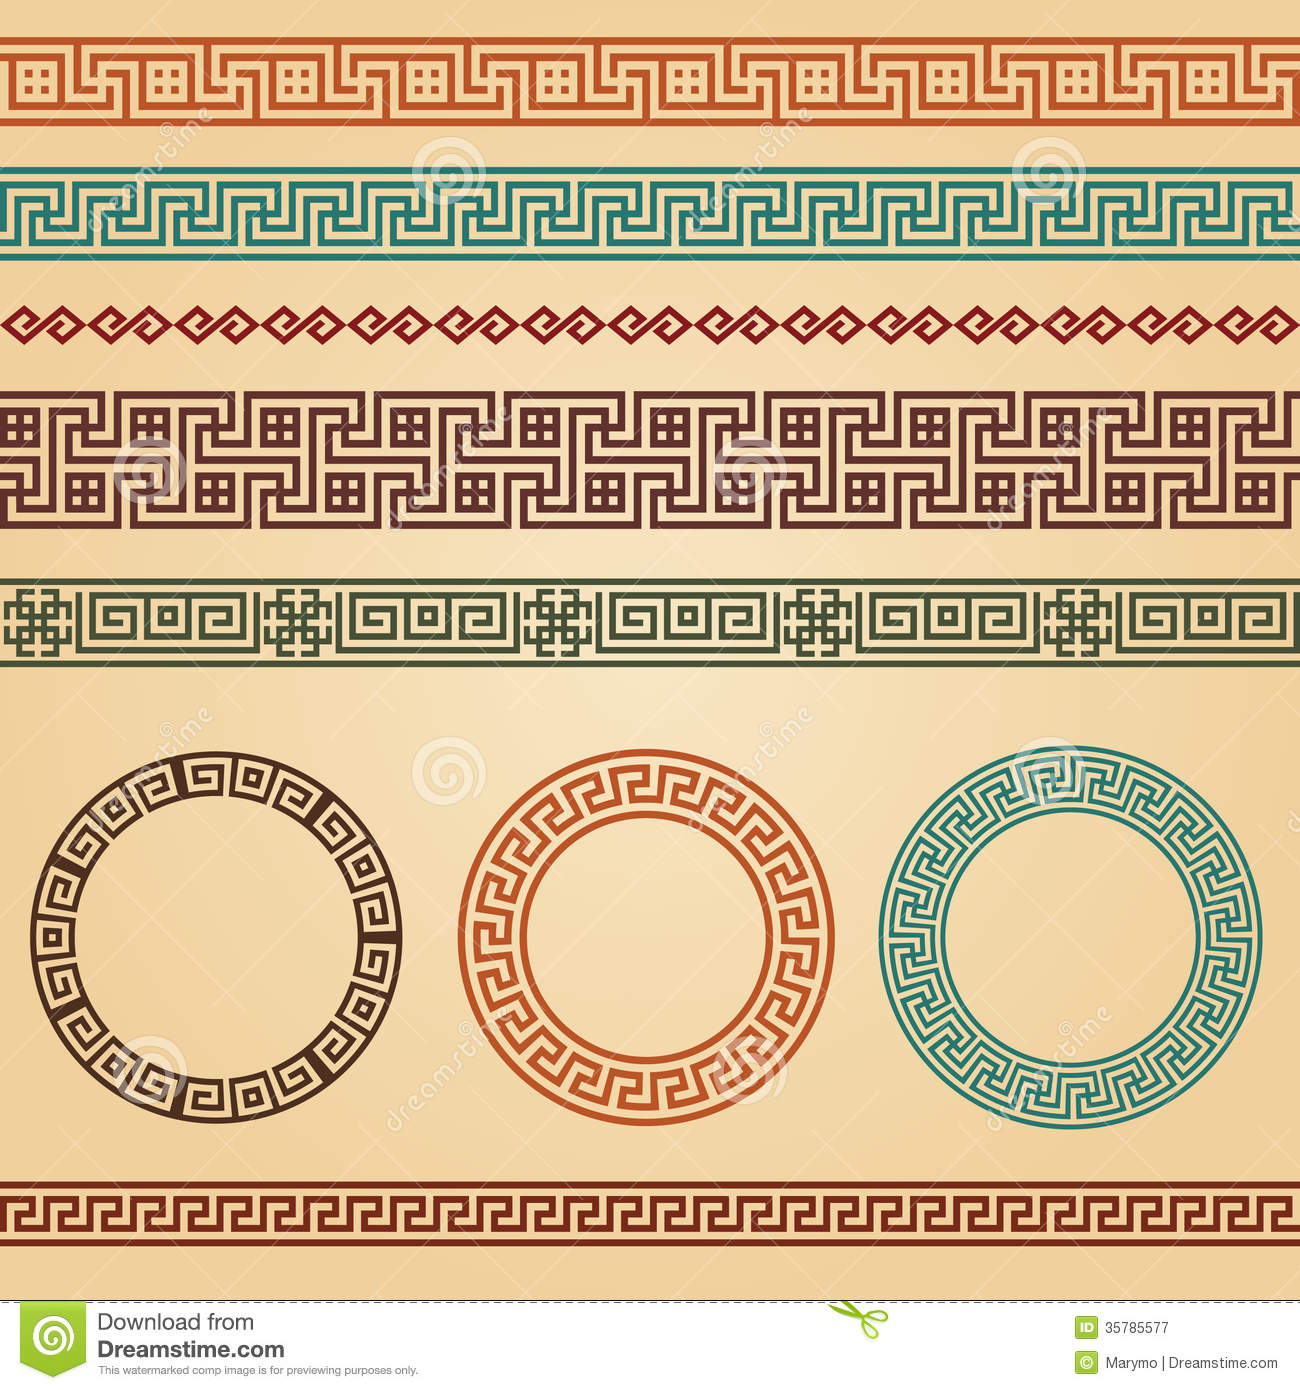 Greek borders decoration elements royalty free stock for Decoration elements